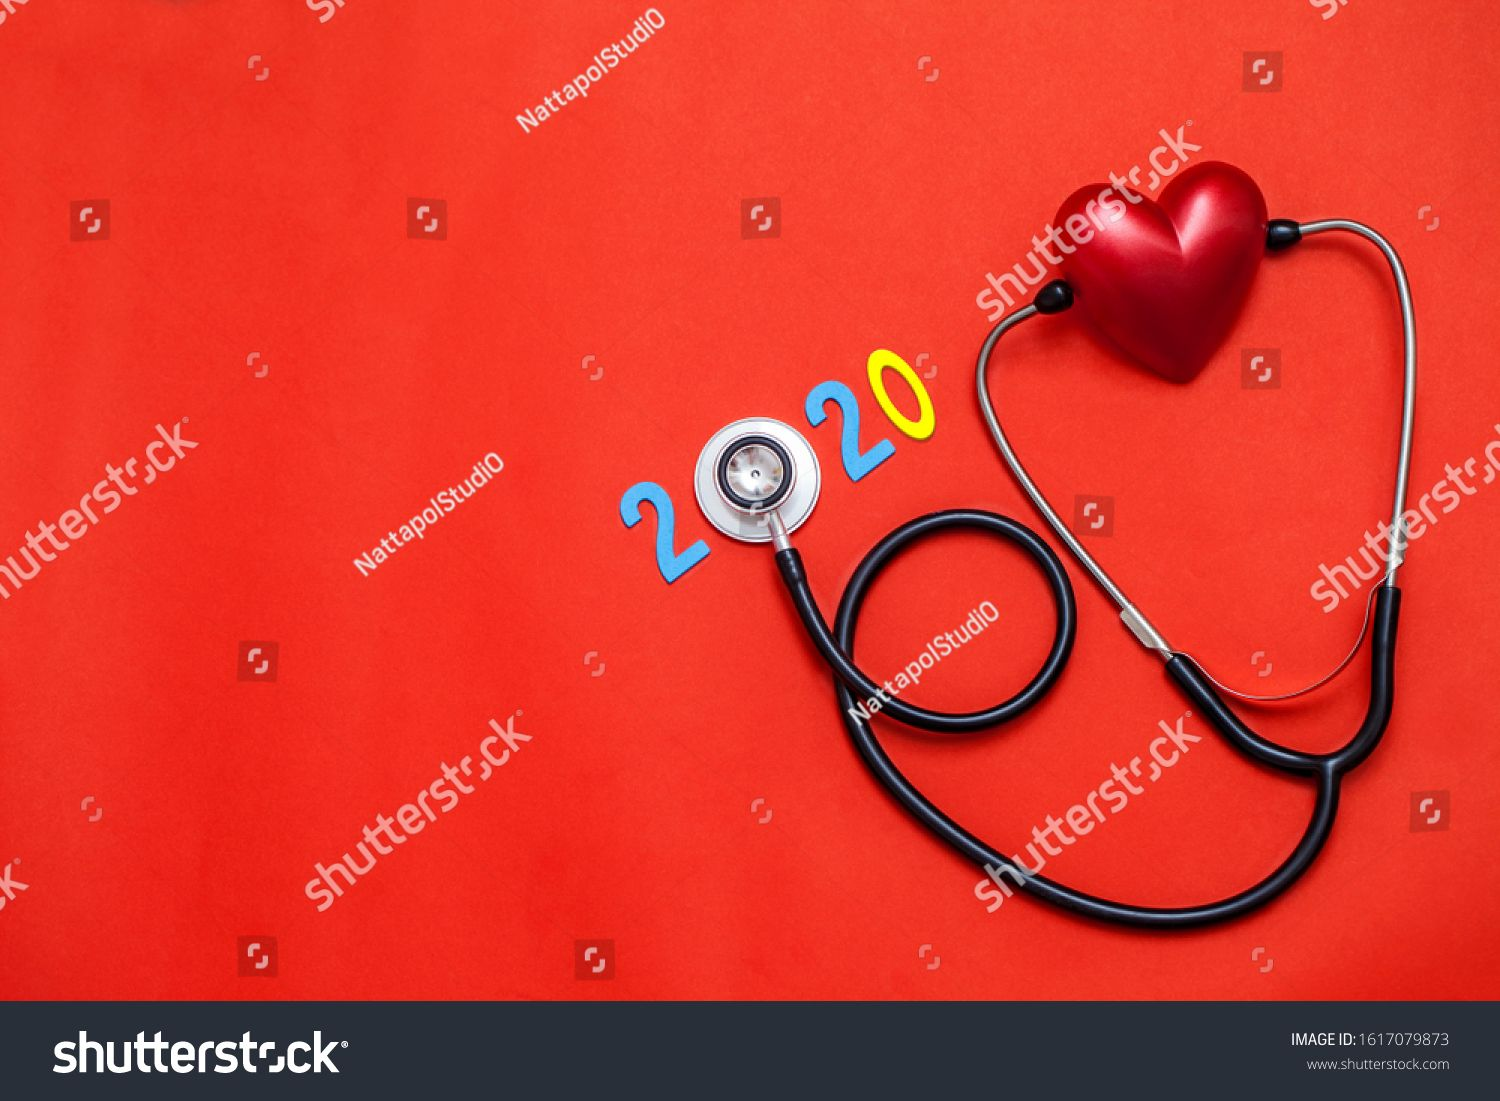 Wooden Colorful On Text 2020 Banner For Health Care And Red Heart Love Medical Concept Black Stethoscope On Ta In 2020 Red Background 10 Things Presentation Templates